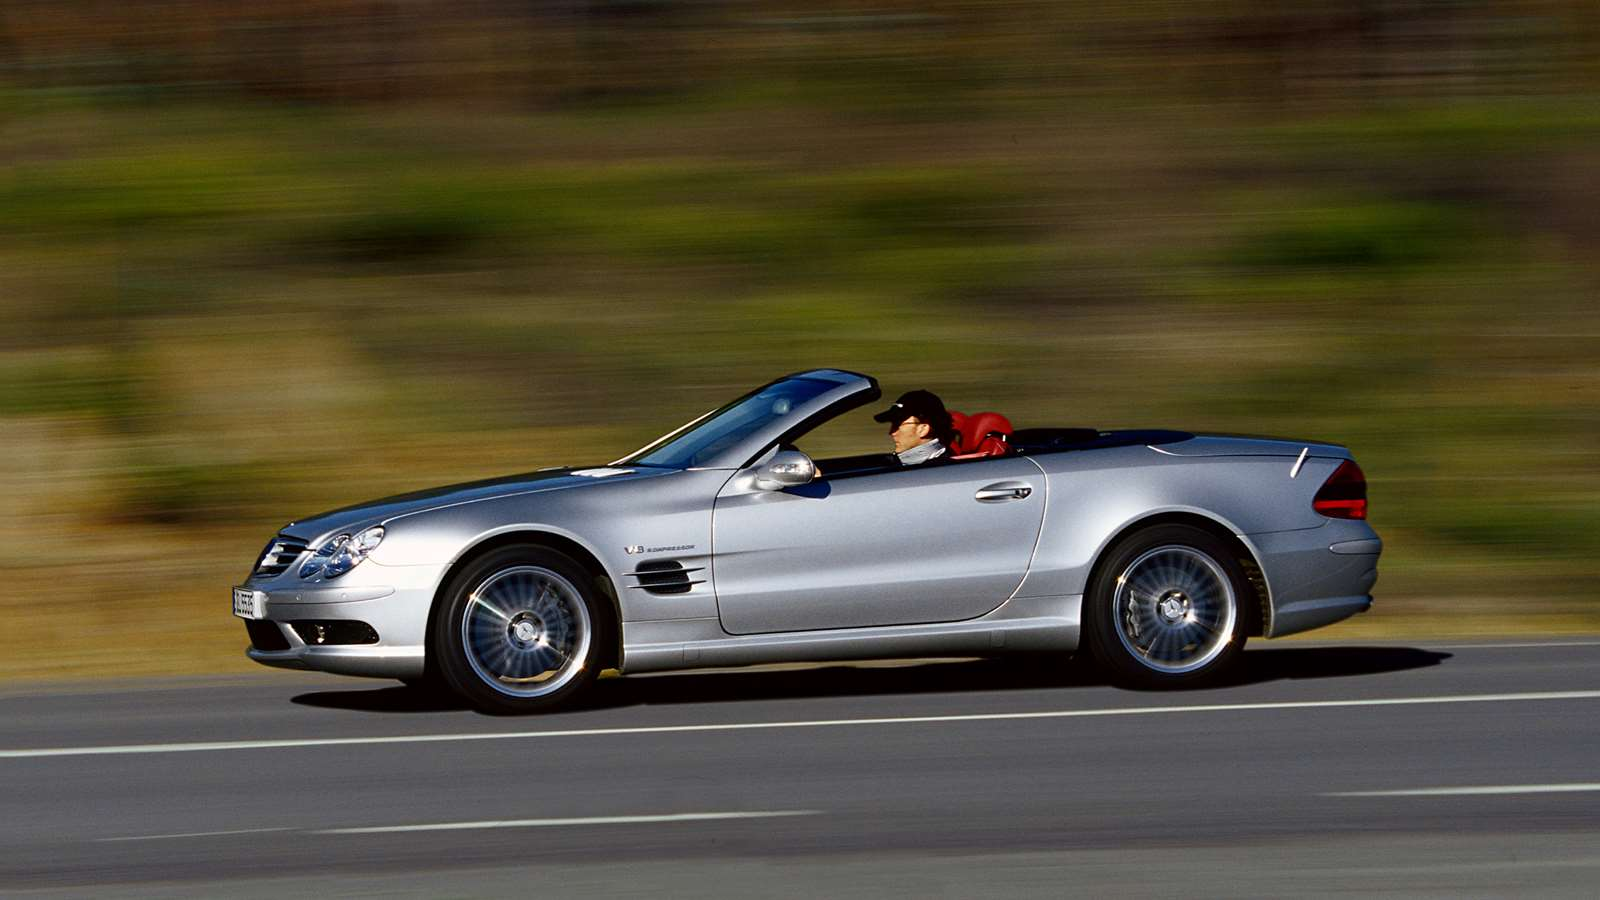 Dan Trent: SL55 AMG – fast road to ruin or bargain of the